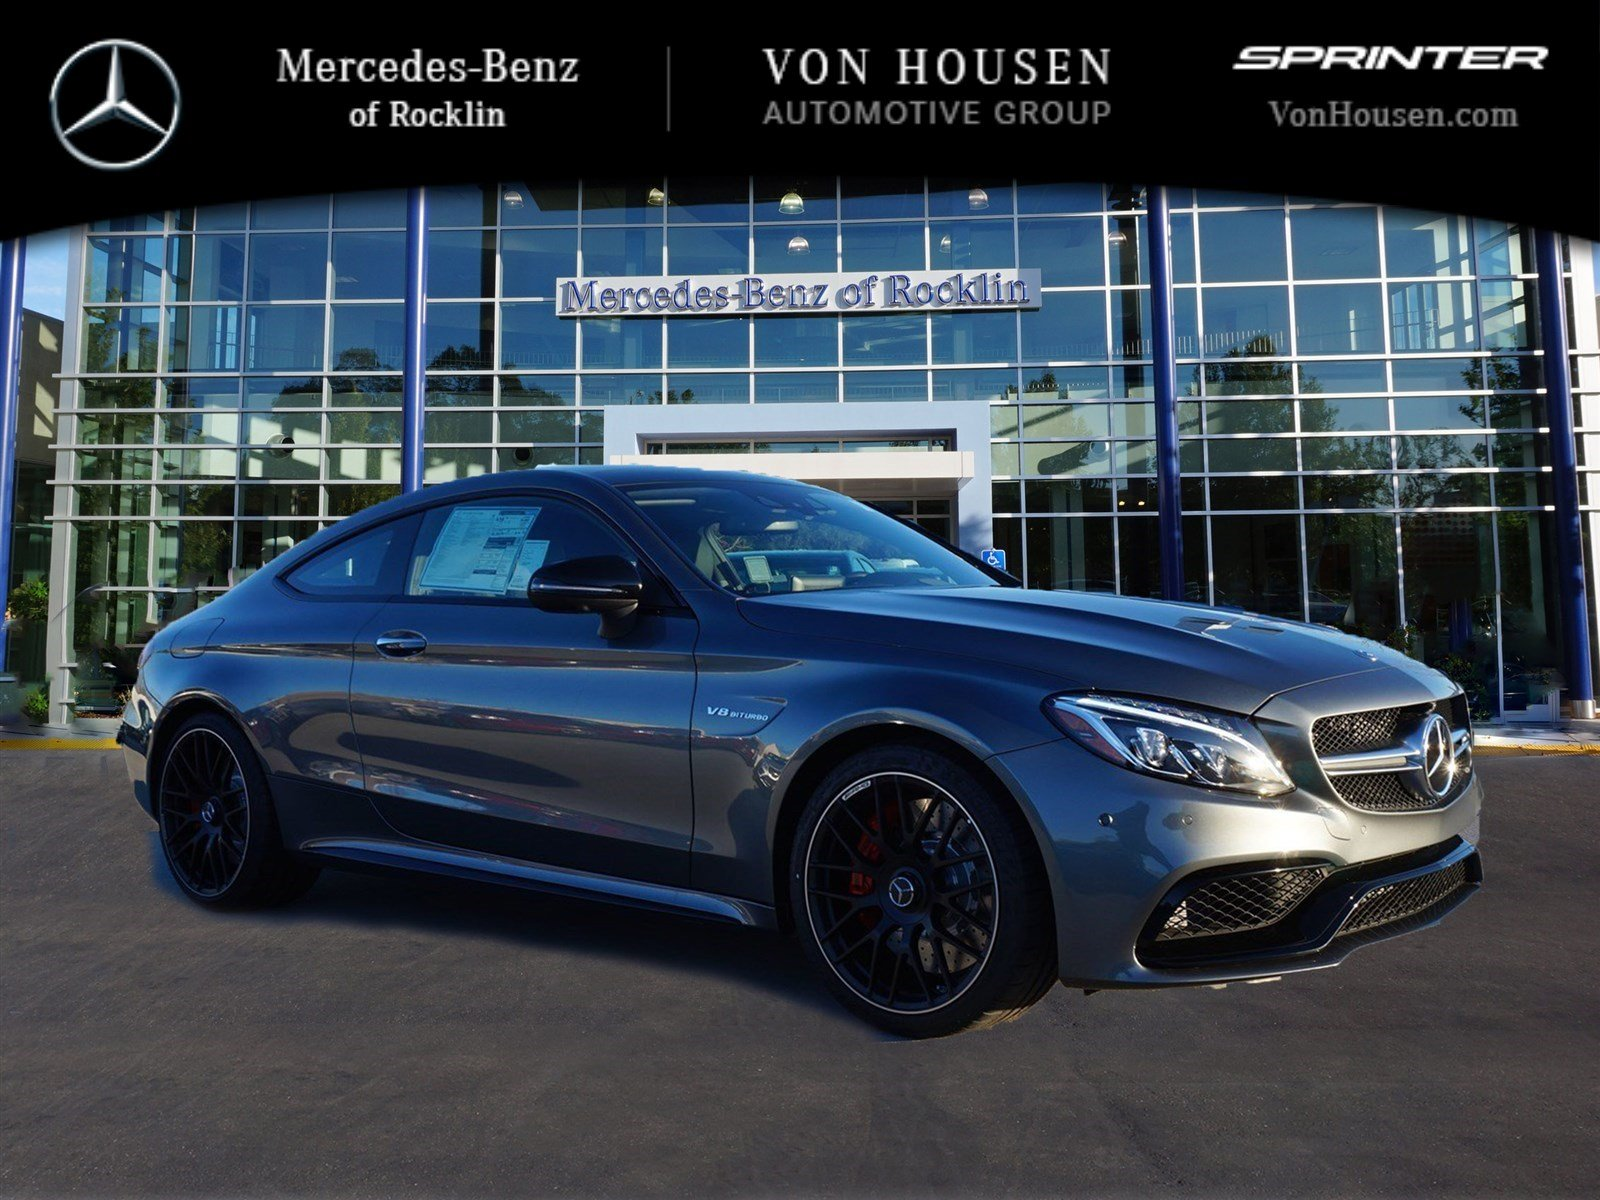 New 2017 mercedes benz c class amg c63 s 2dr car in for Mercedes benz rocklin service